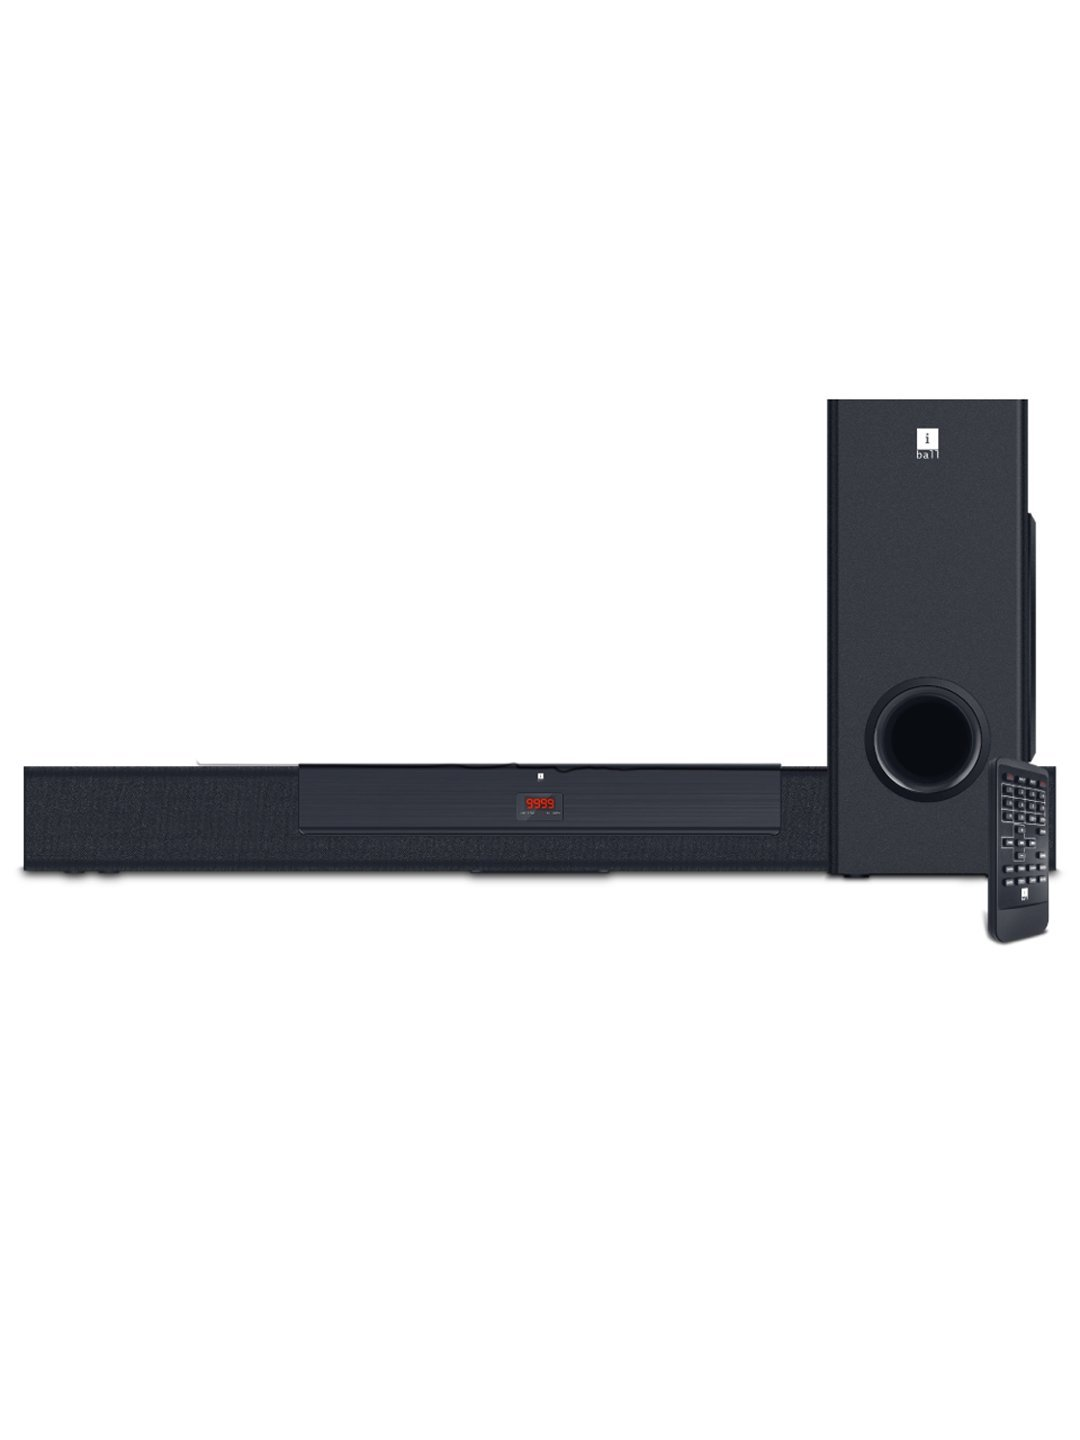 d1c32e4c1e8 Amazon.in: Buy iBall Soundbar-B3 Woofer Online at Low Prices in India    iBall Reviews & Ratings